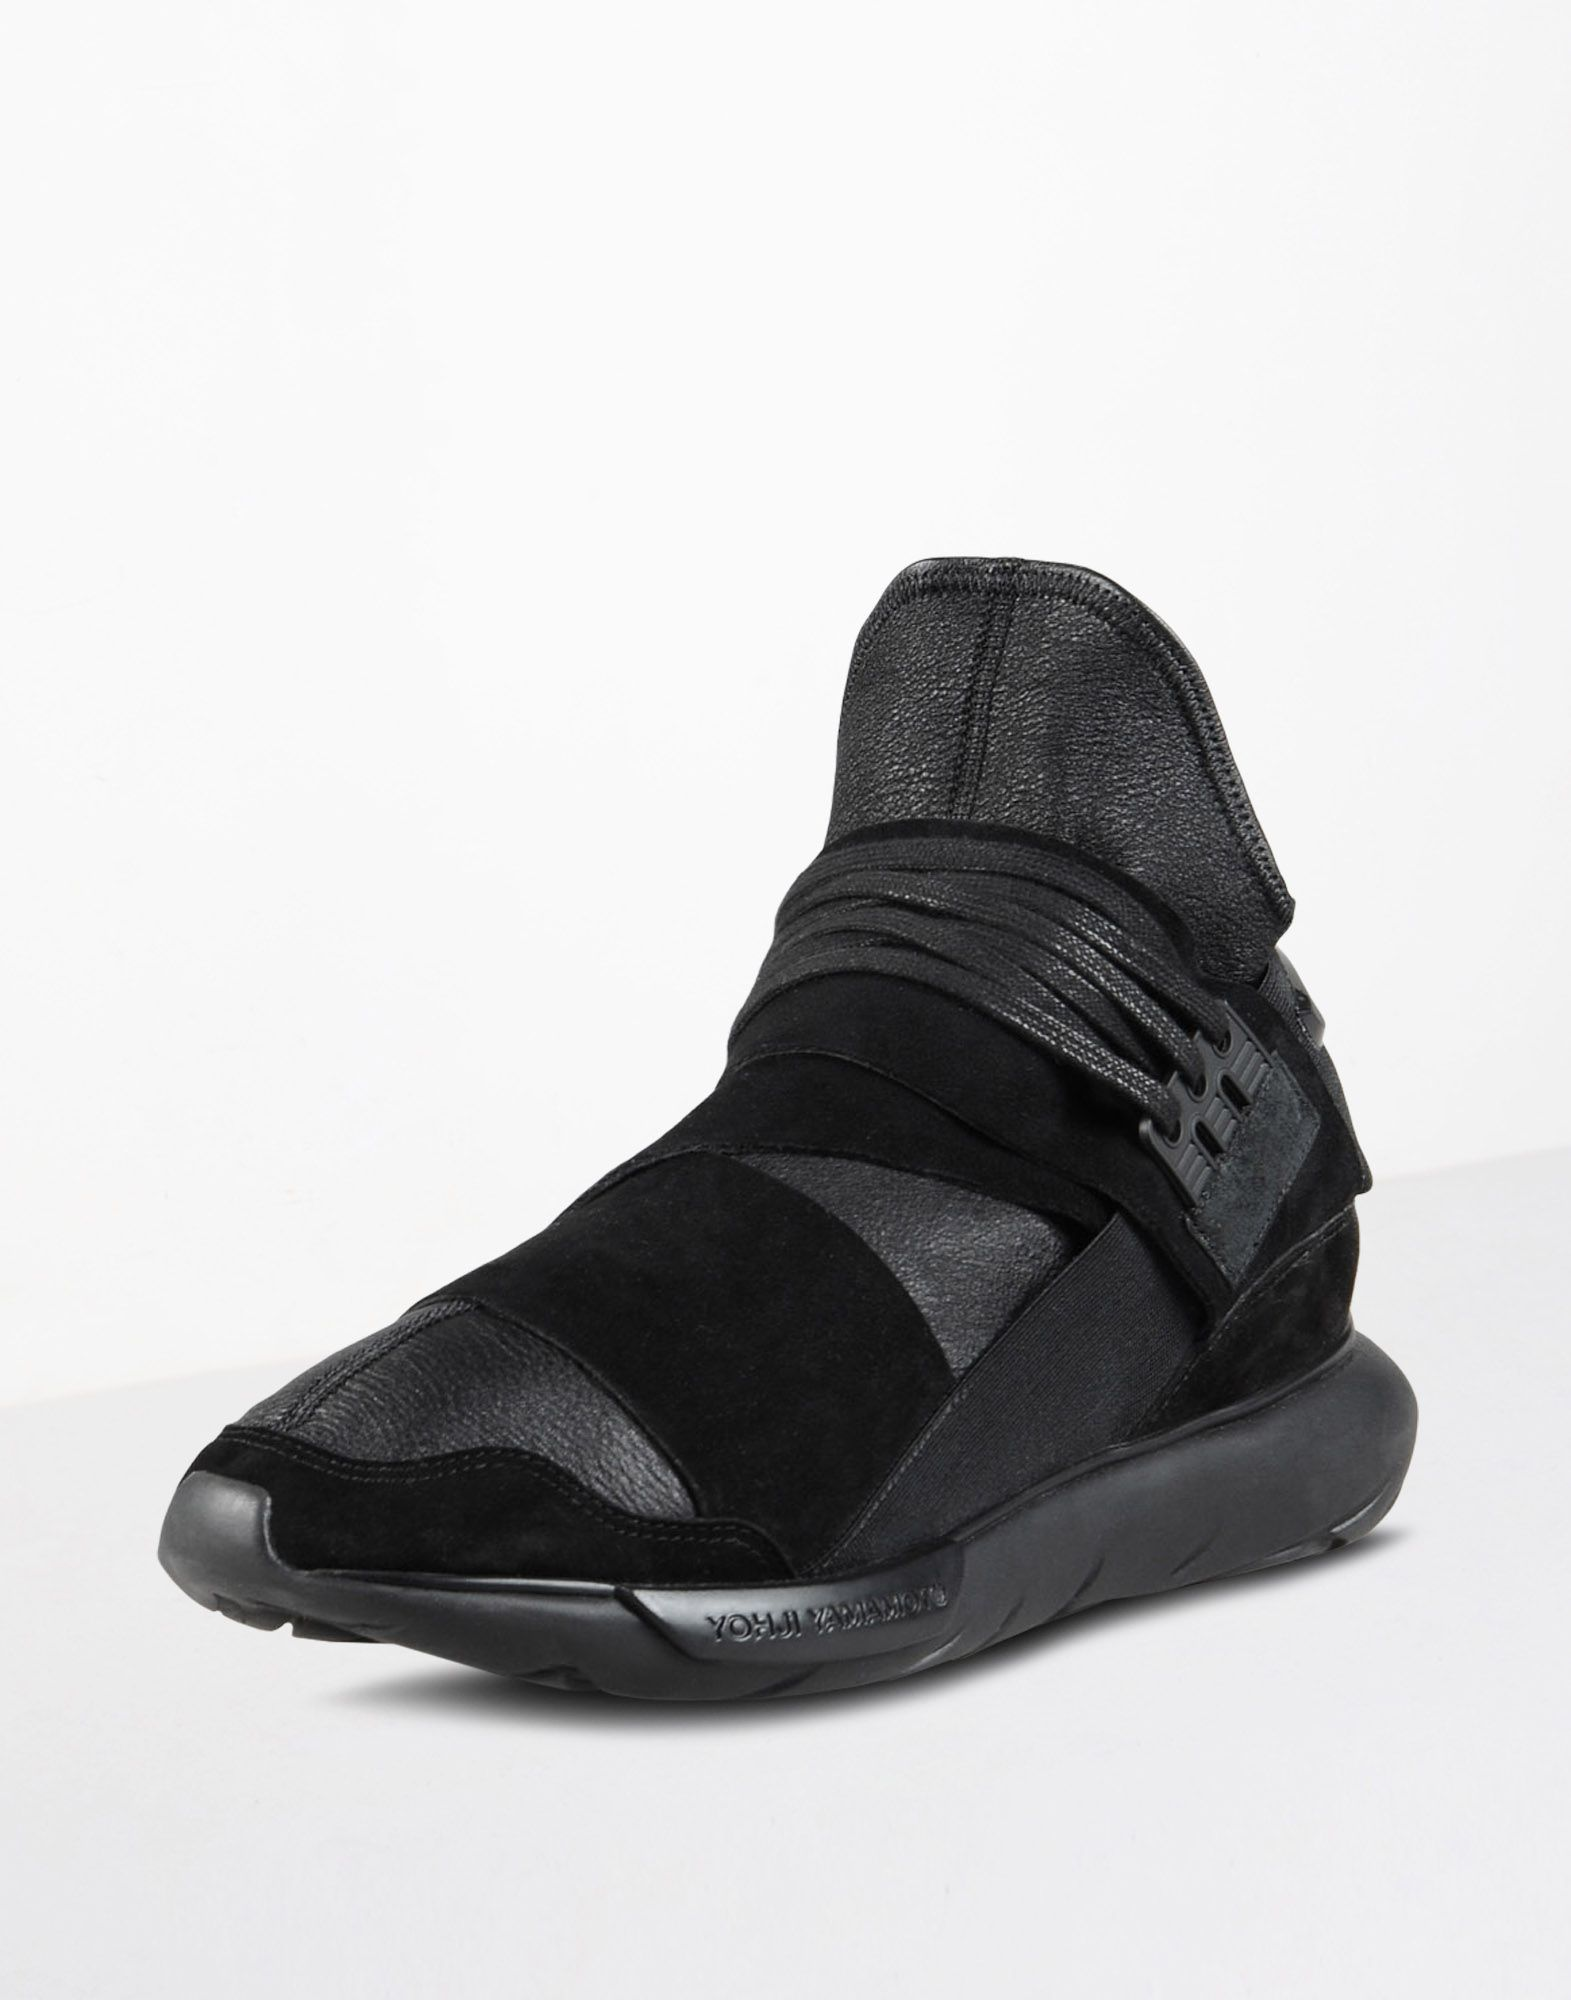 c74242ee11157 Y-3 QASA HIGH SHOES man Y-3 adidas